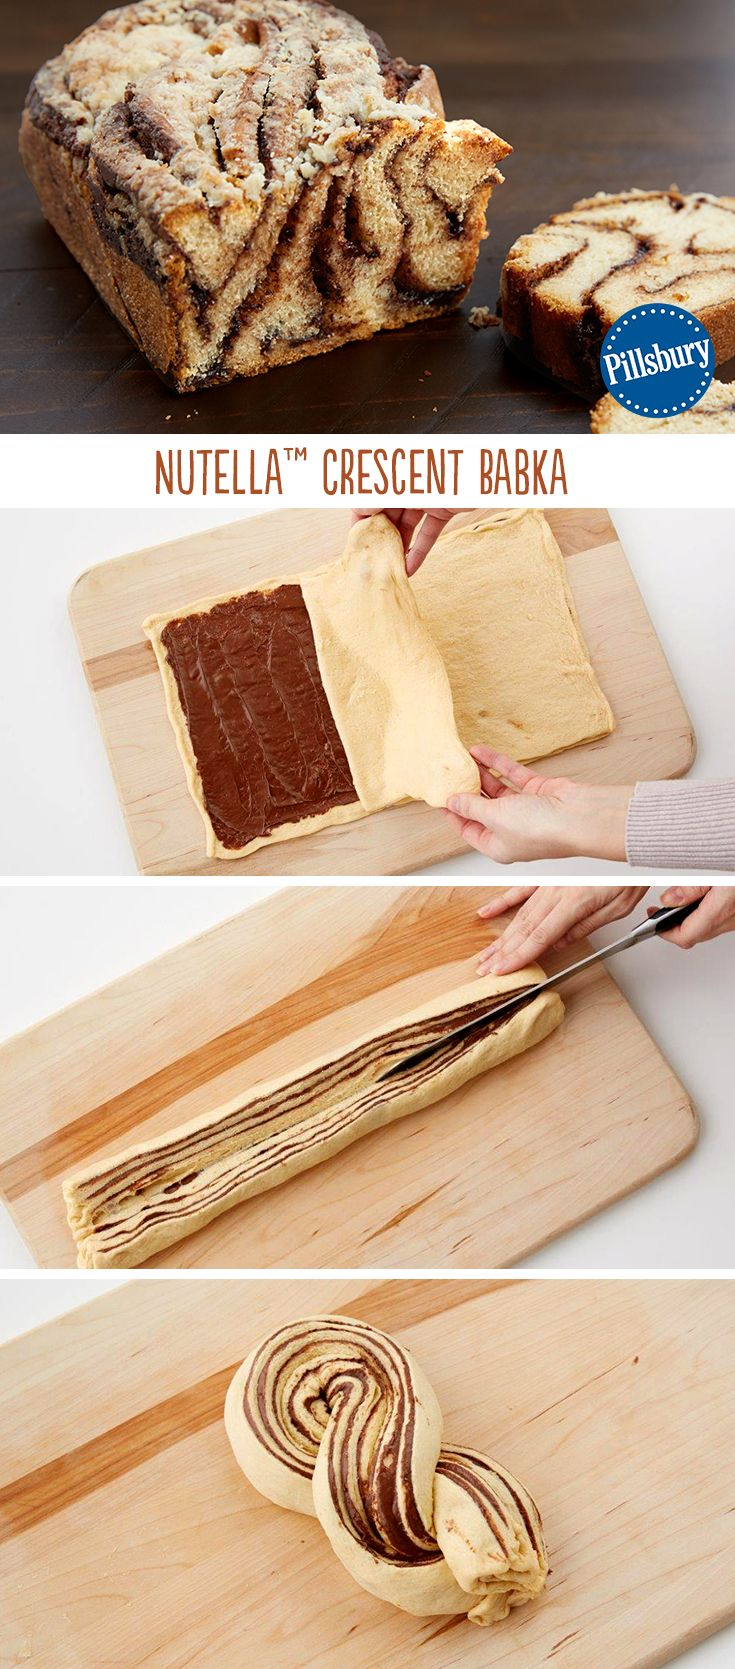 Indulgence doesn't take a backseat with this amazing Nutella Cresent Babka! If you love the original, this is a fun twist that uses on 5 ingredients -- you'll be making it over and over again! This delicious dessert or morning snack is made with crescent dough. Serve it at a party to delight all your guests!